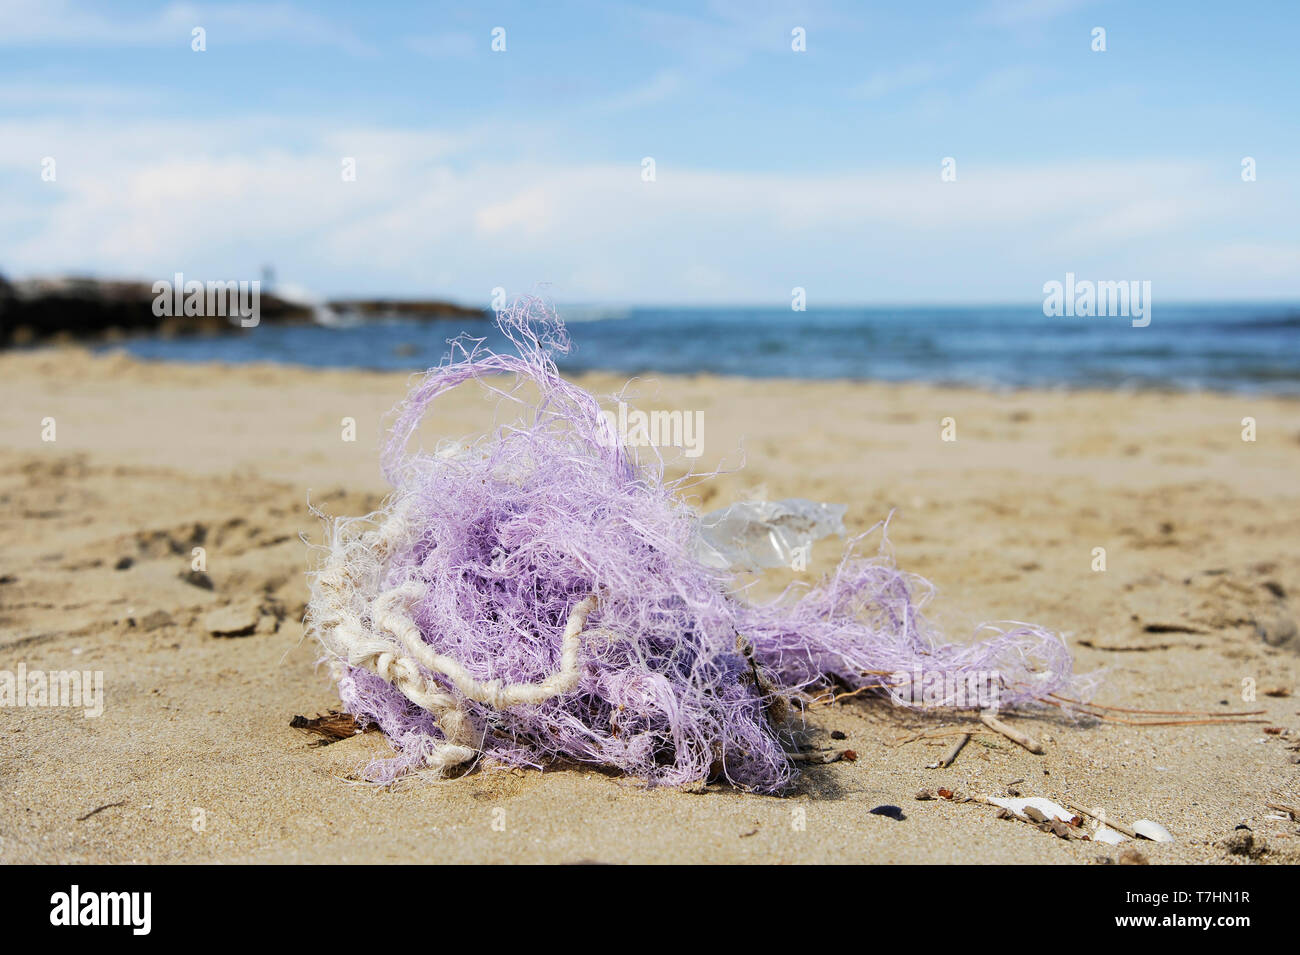 Fishing nylon net on the sand. Garbage on the beach. Dirty sea shore. Environmental pollution. Save the Planet. Ecological problem. Nature theme. - Stock Image